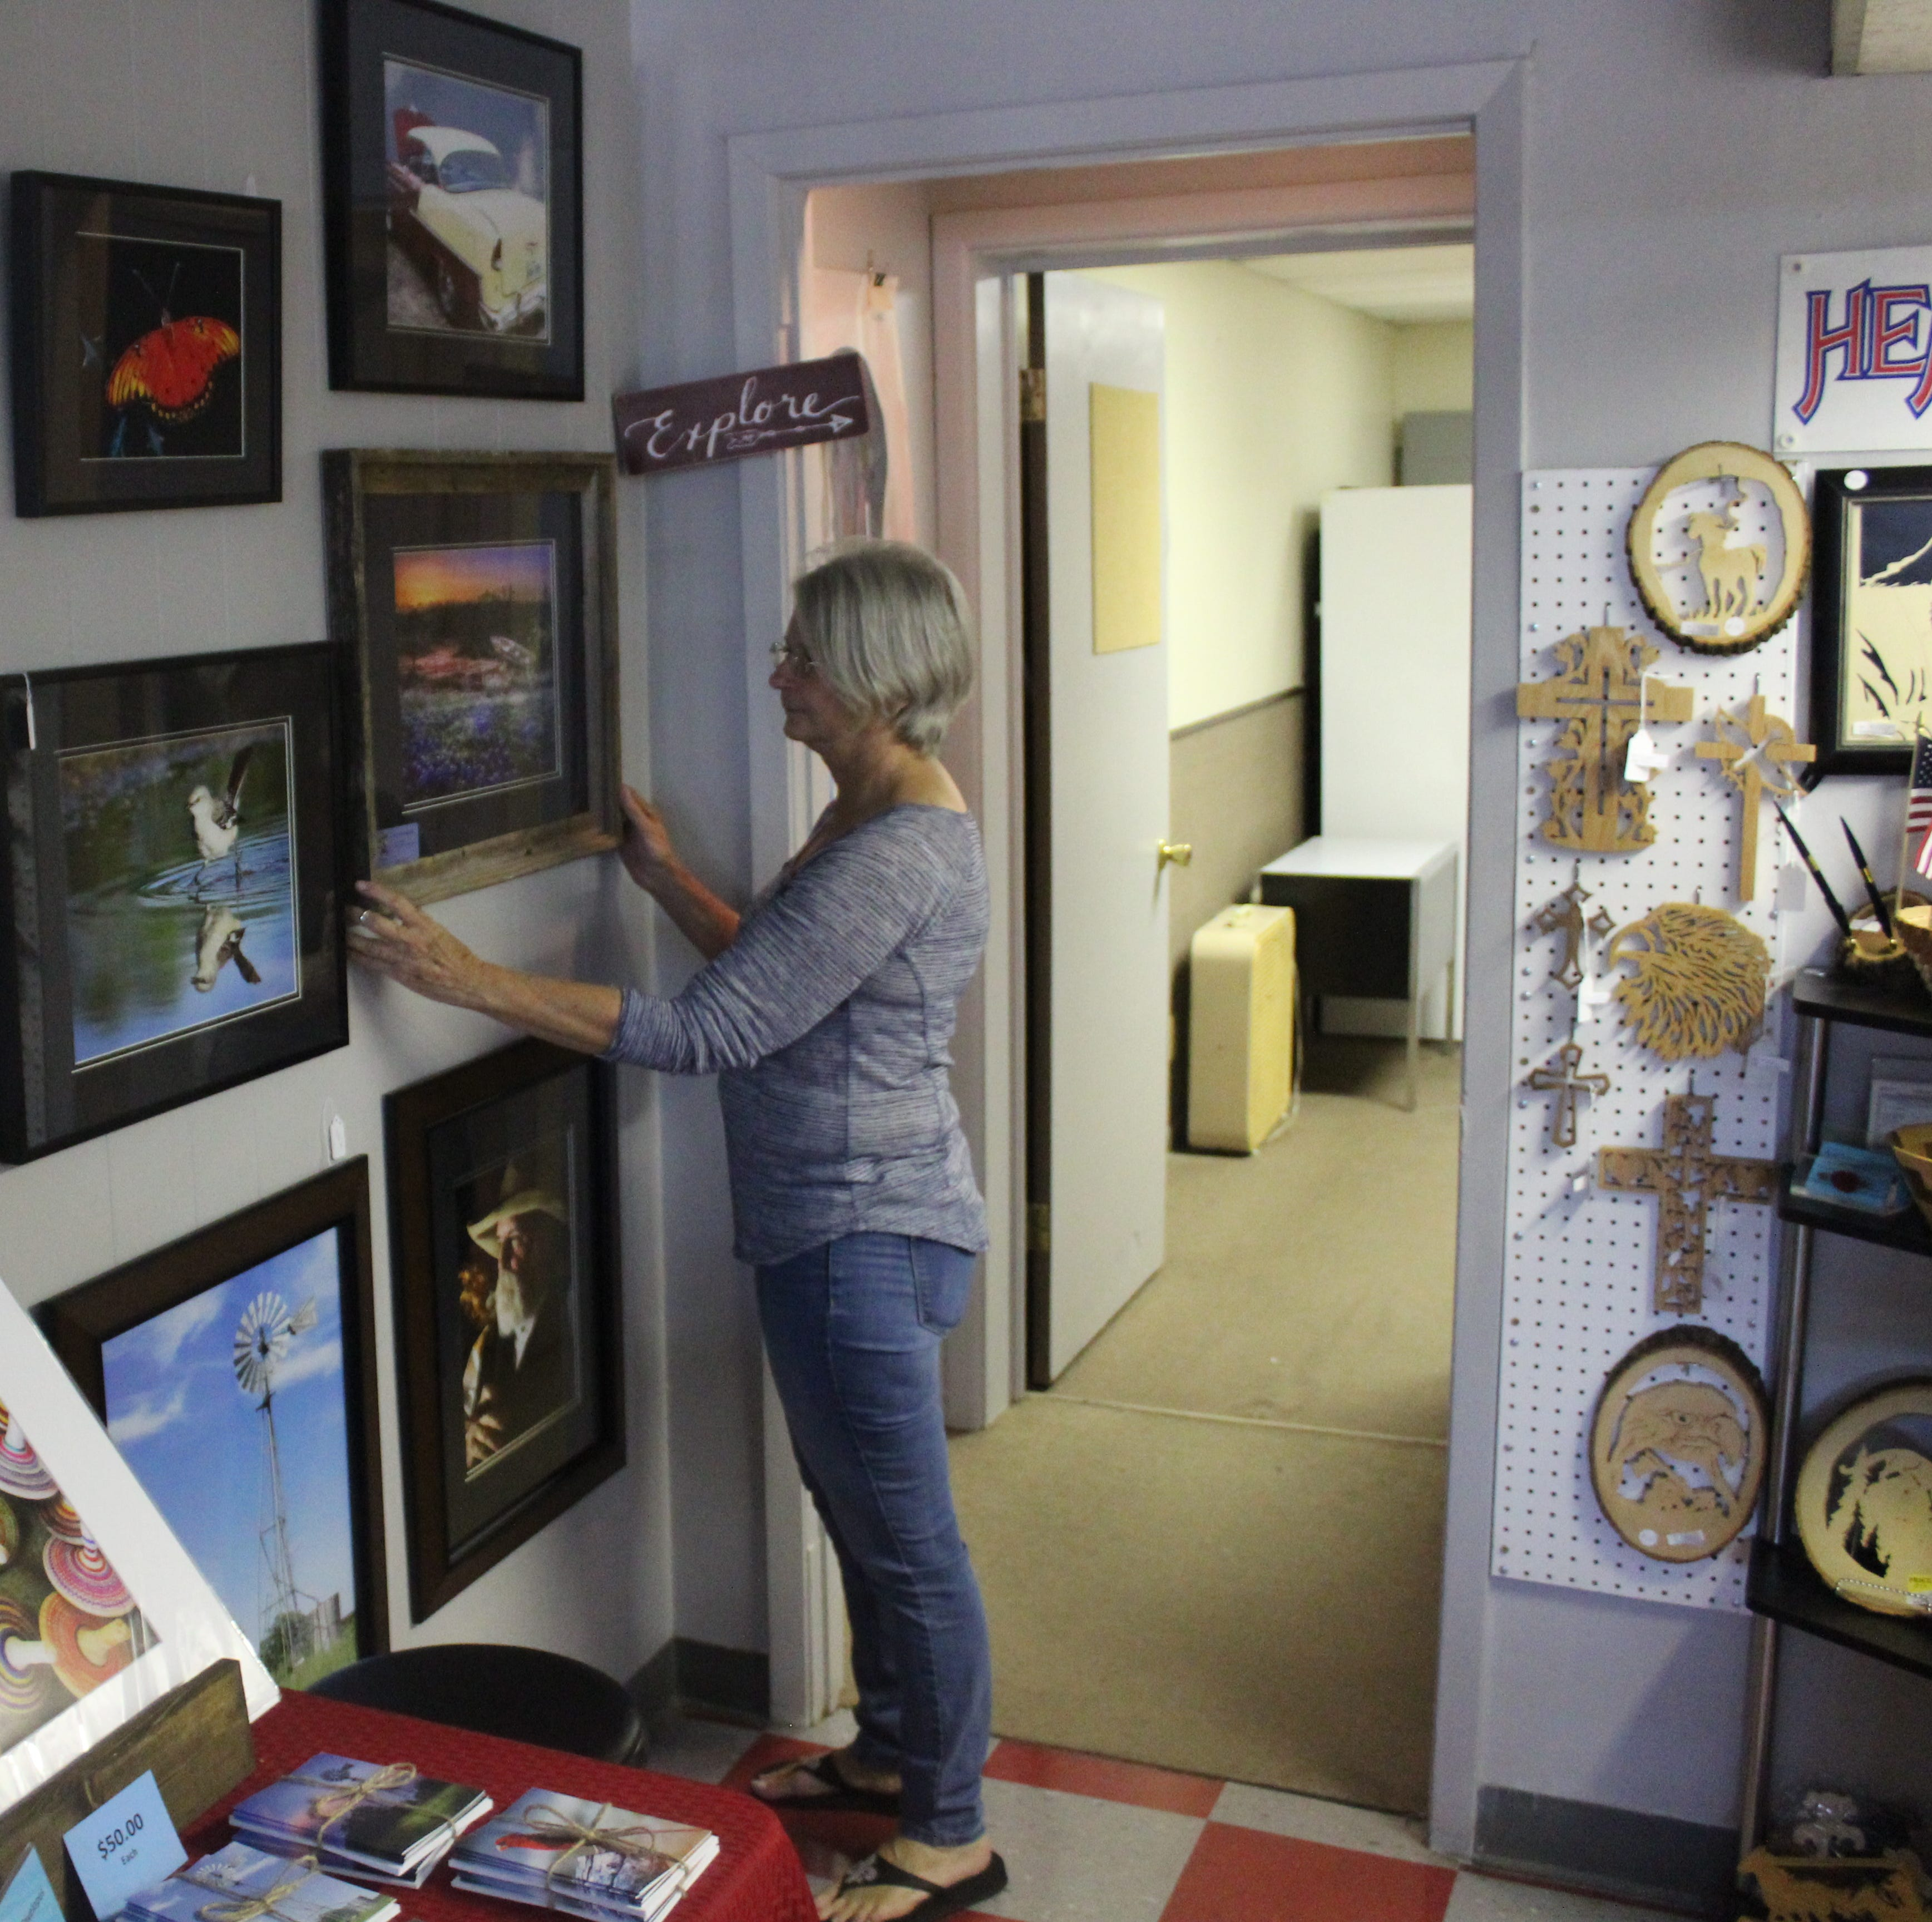 Out of the Box looks to provide good environment for San Angelo artists